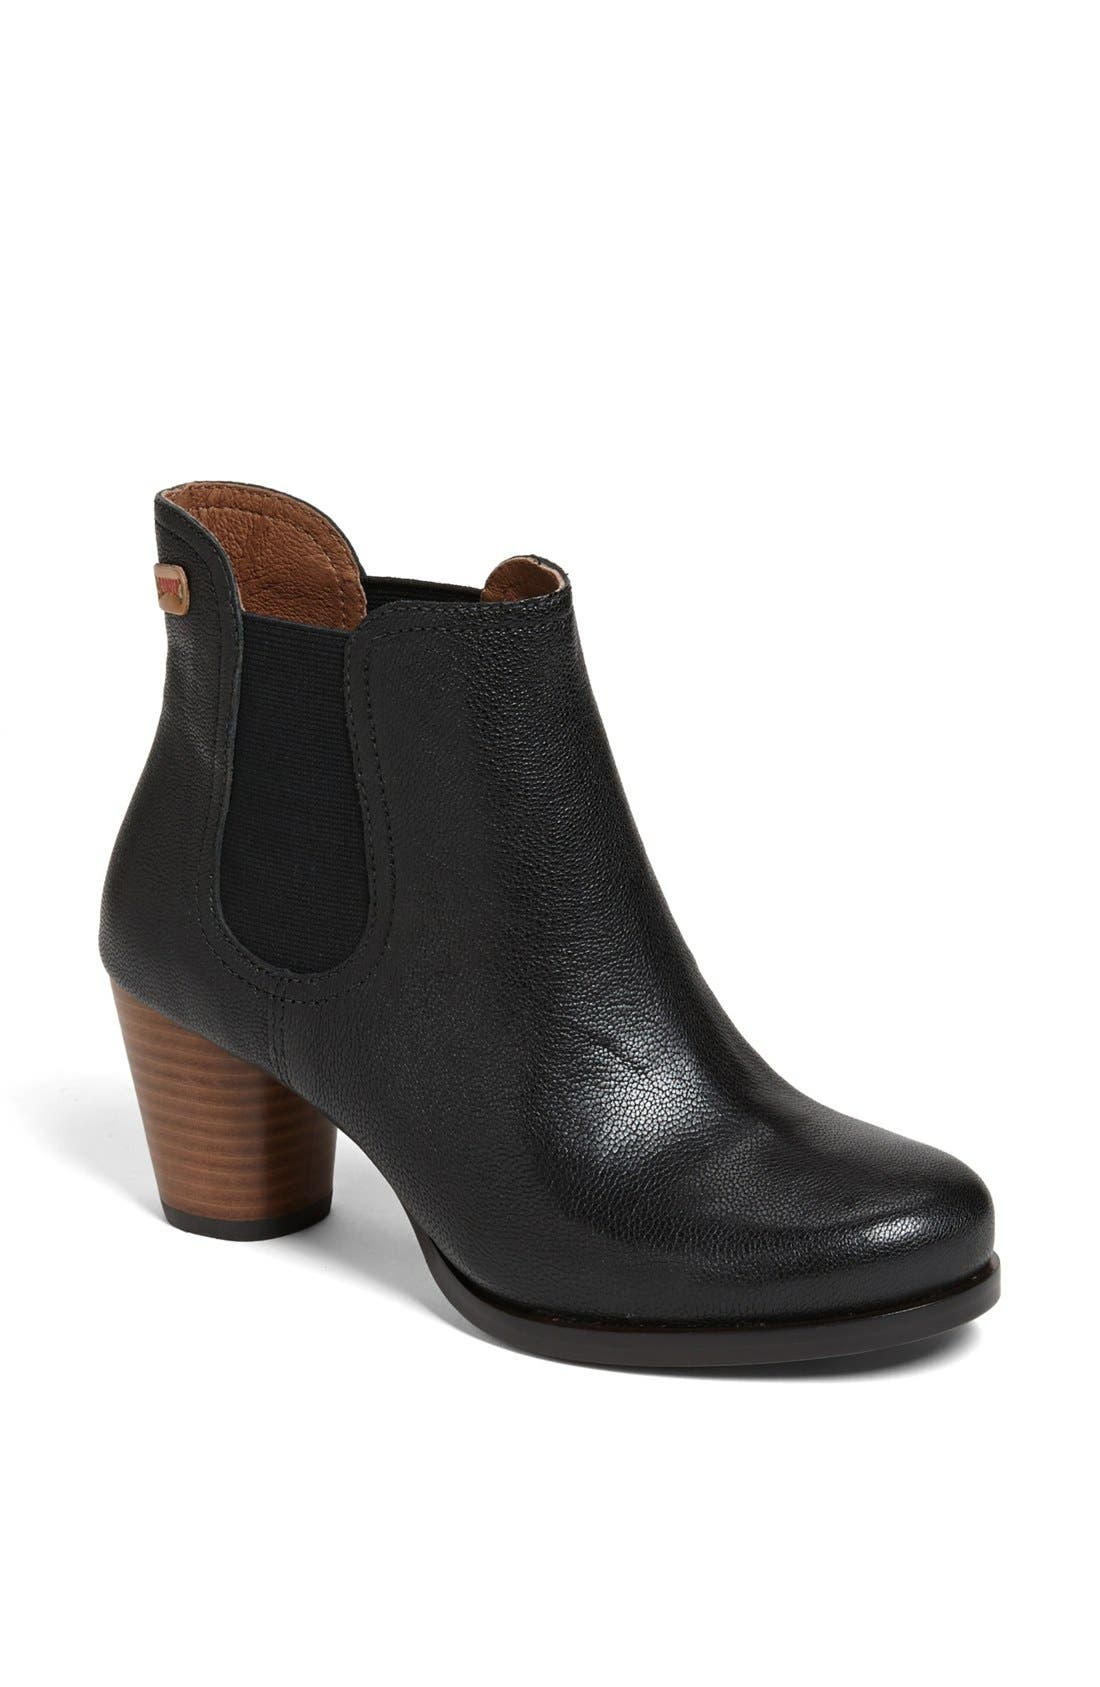 Alternate Image 1 Selected - Camper 'Annie' Ankle Boot